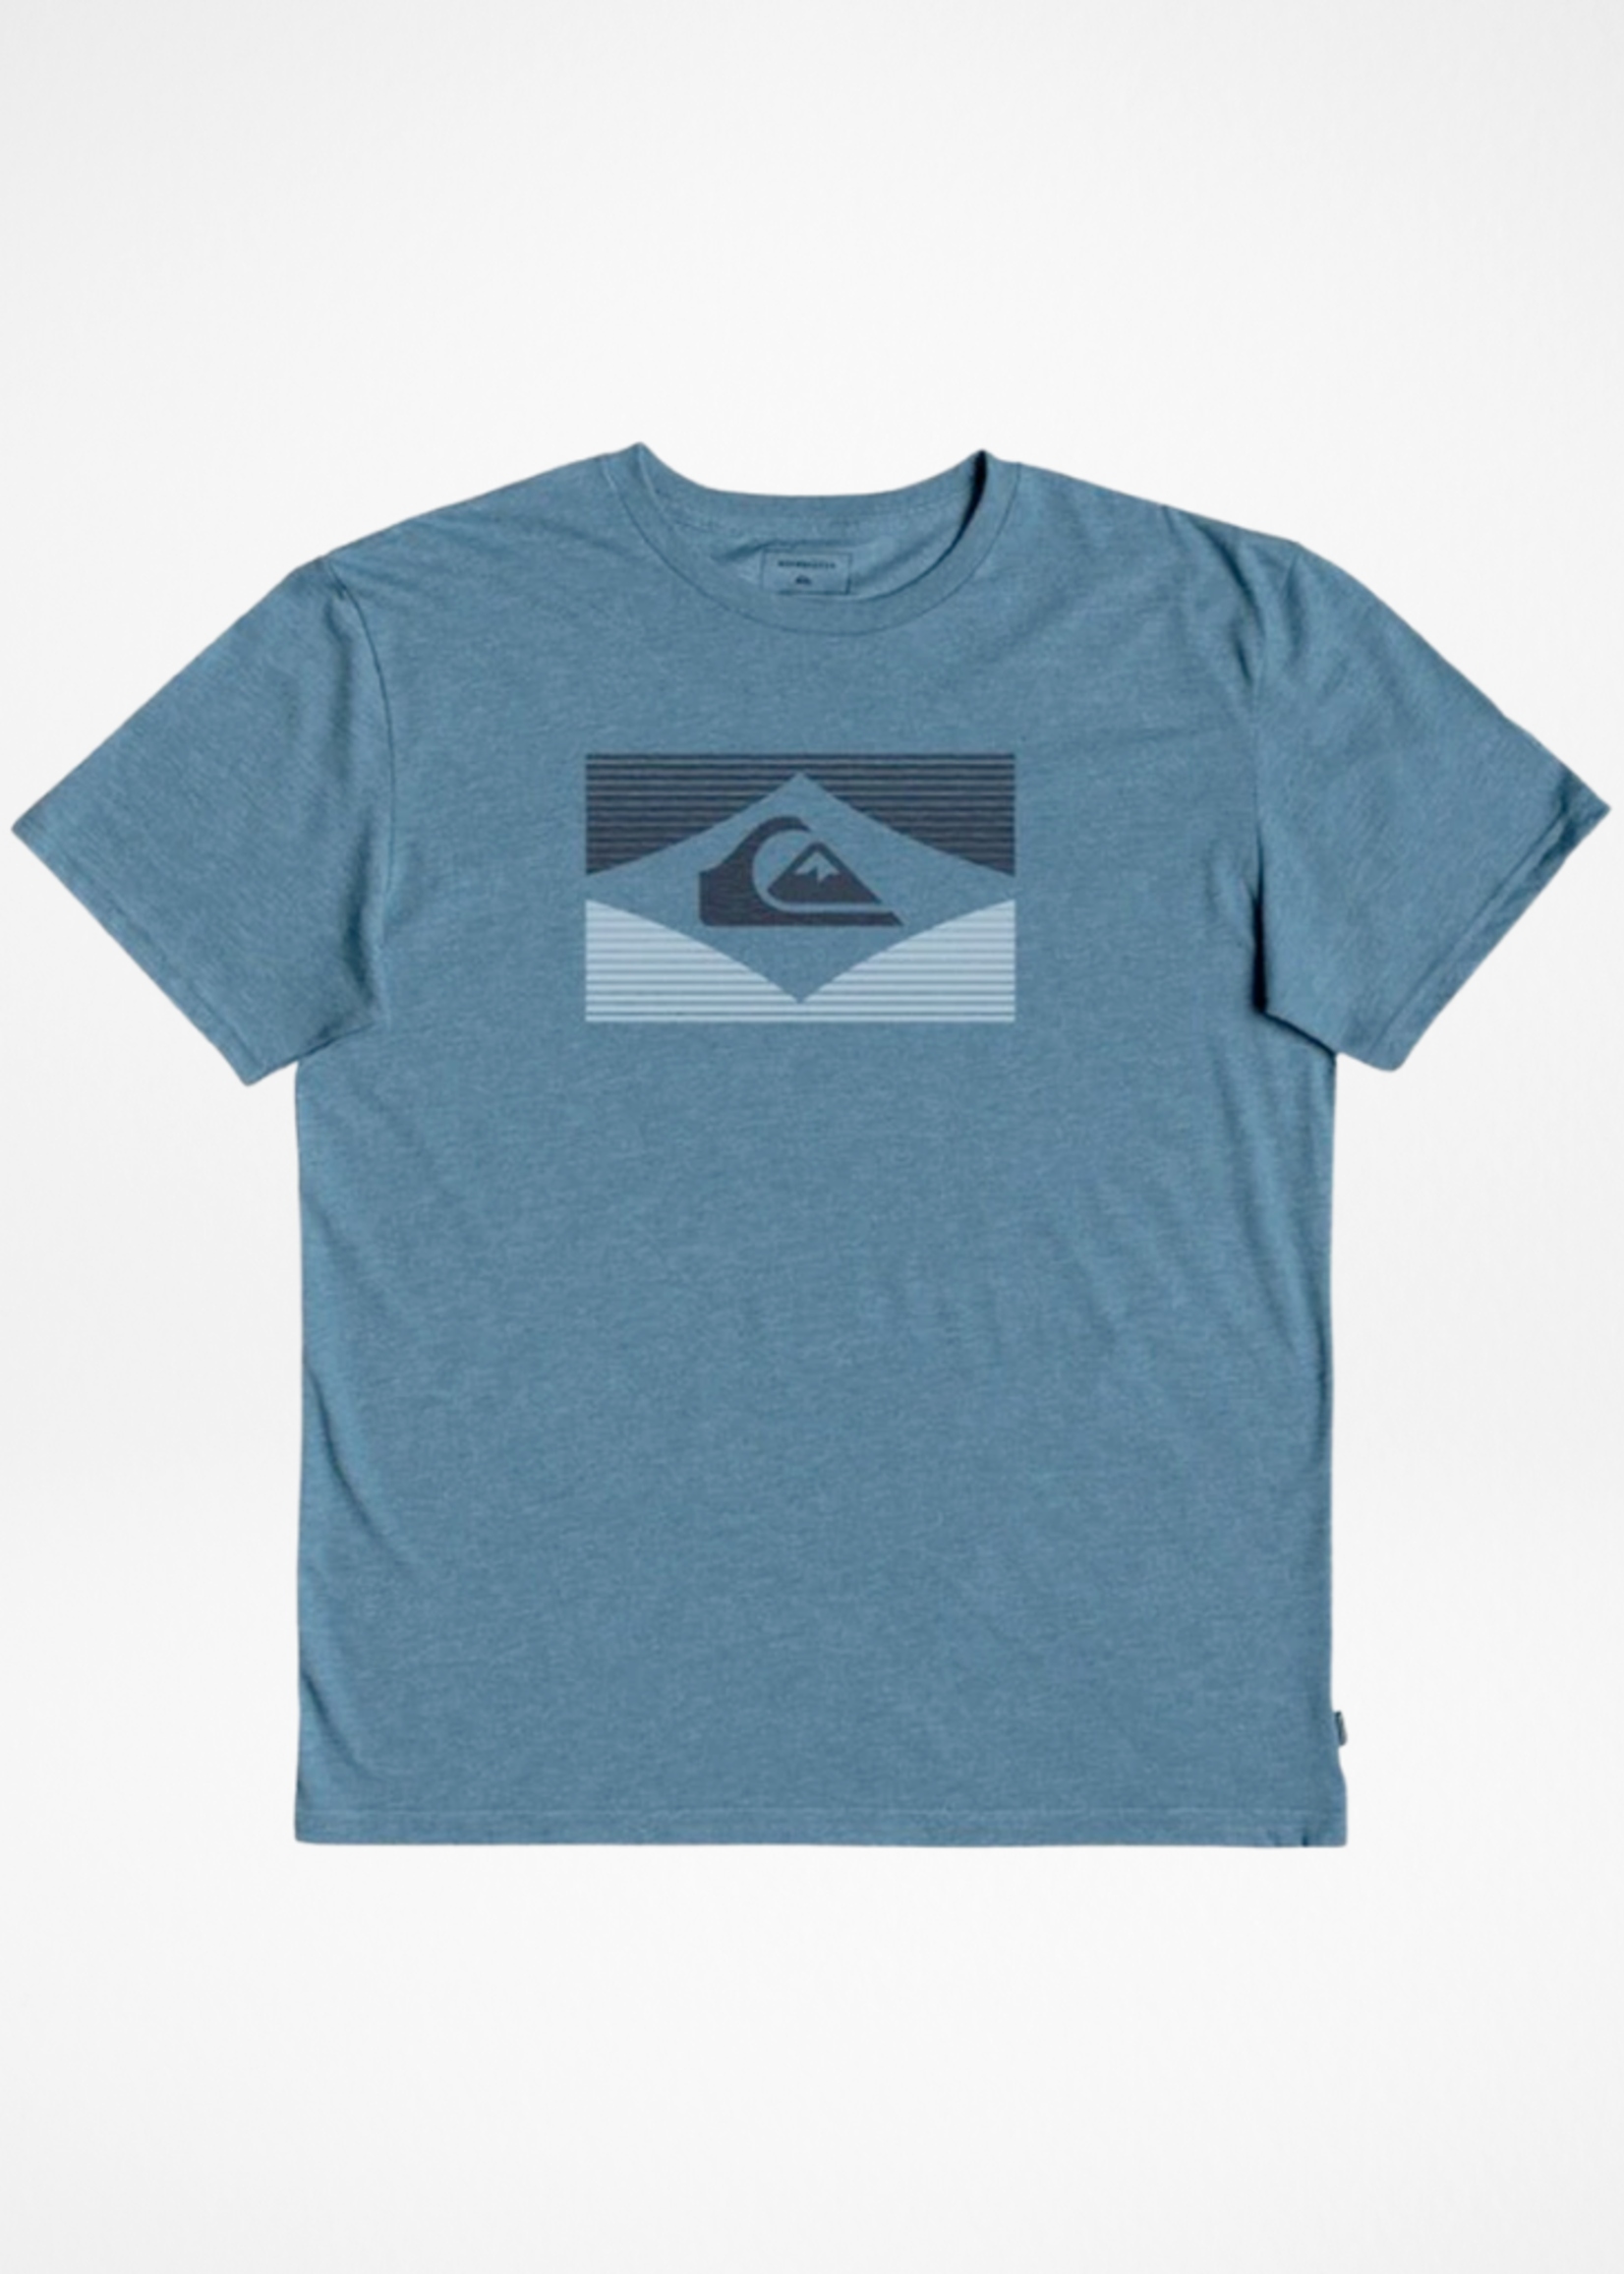 21 QUIKSILVER B DAYS GONE BY TEE